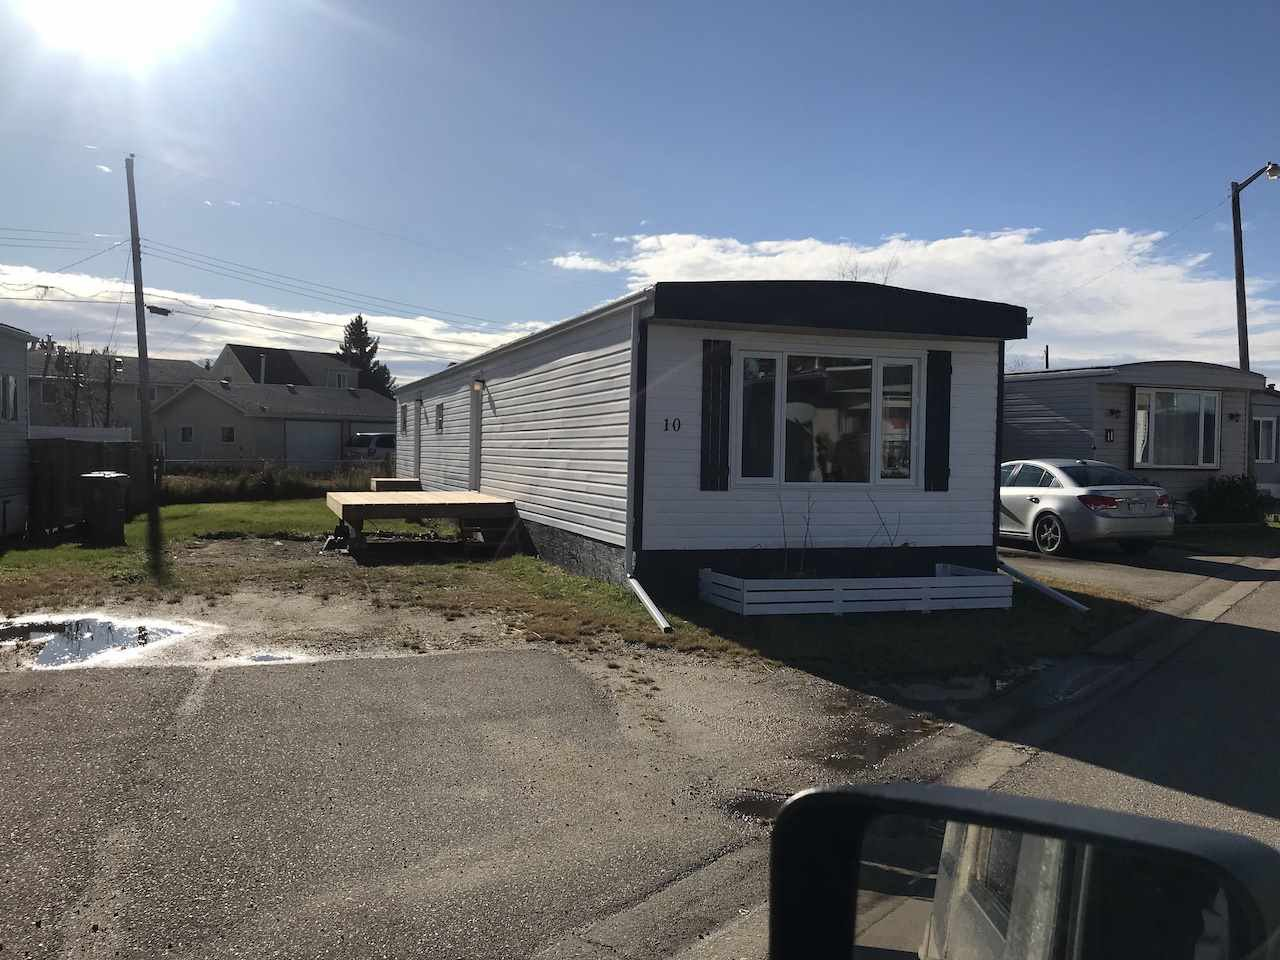 Main Photo: #10, 10410 101A Street: Morinville Mobile for sale : MLS®# E4177307